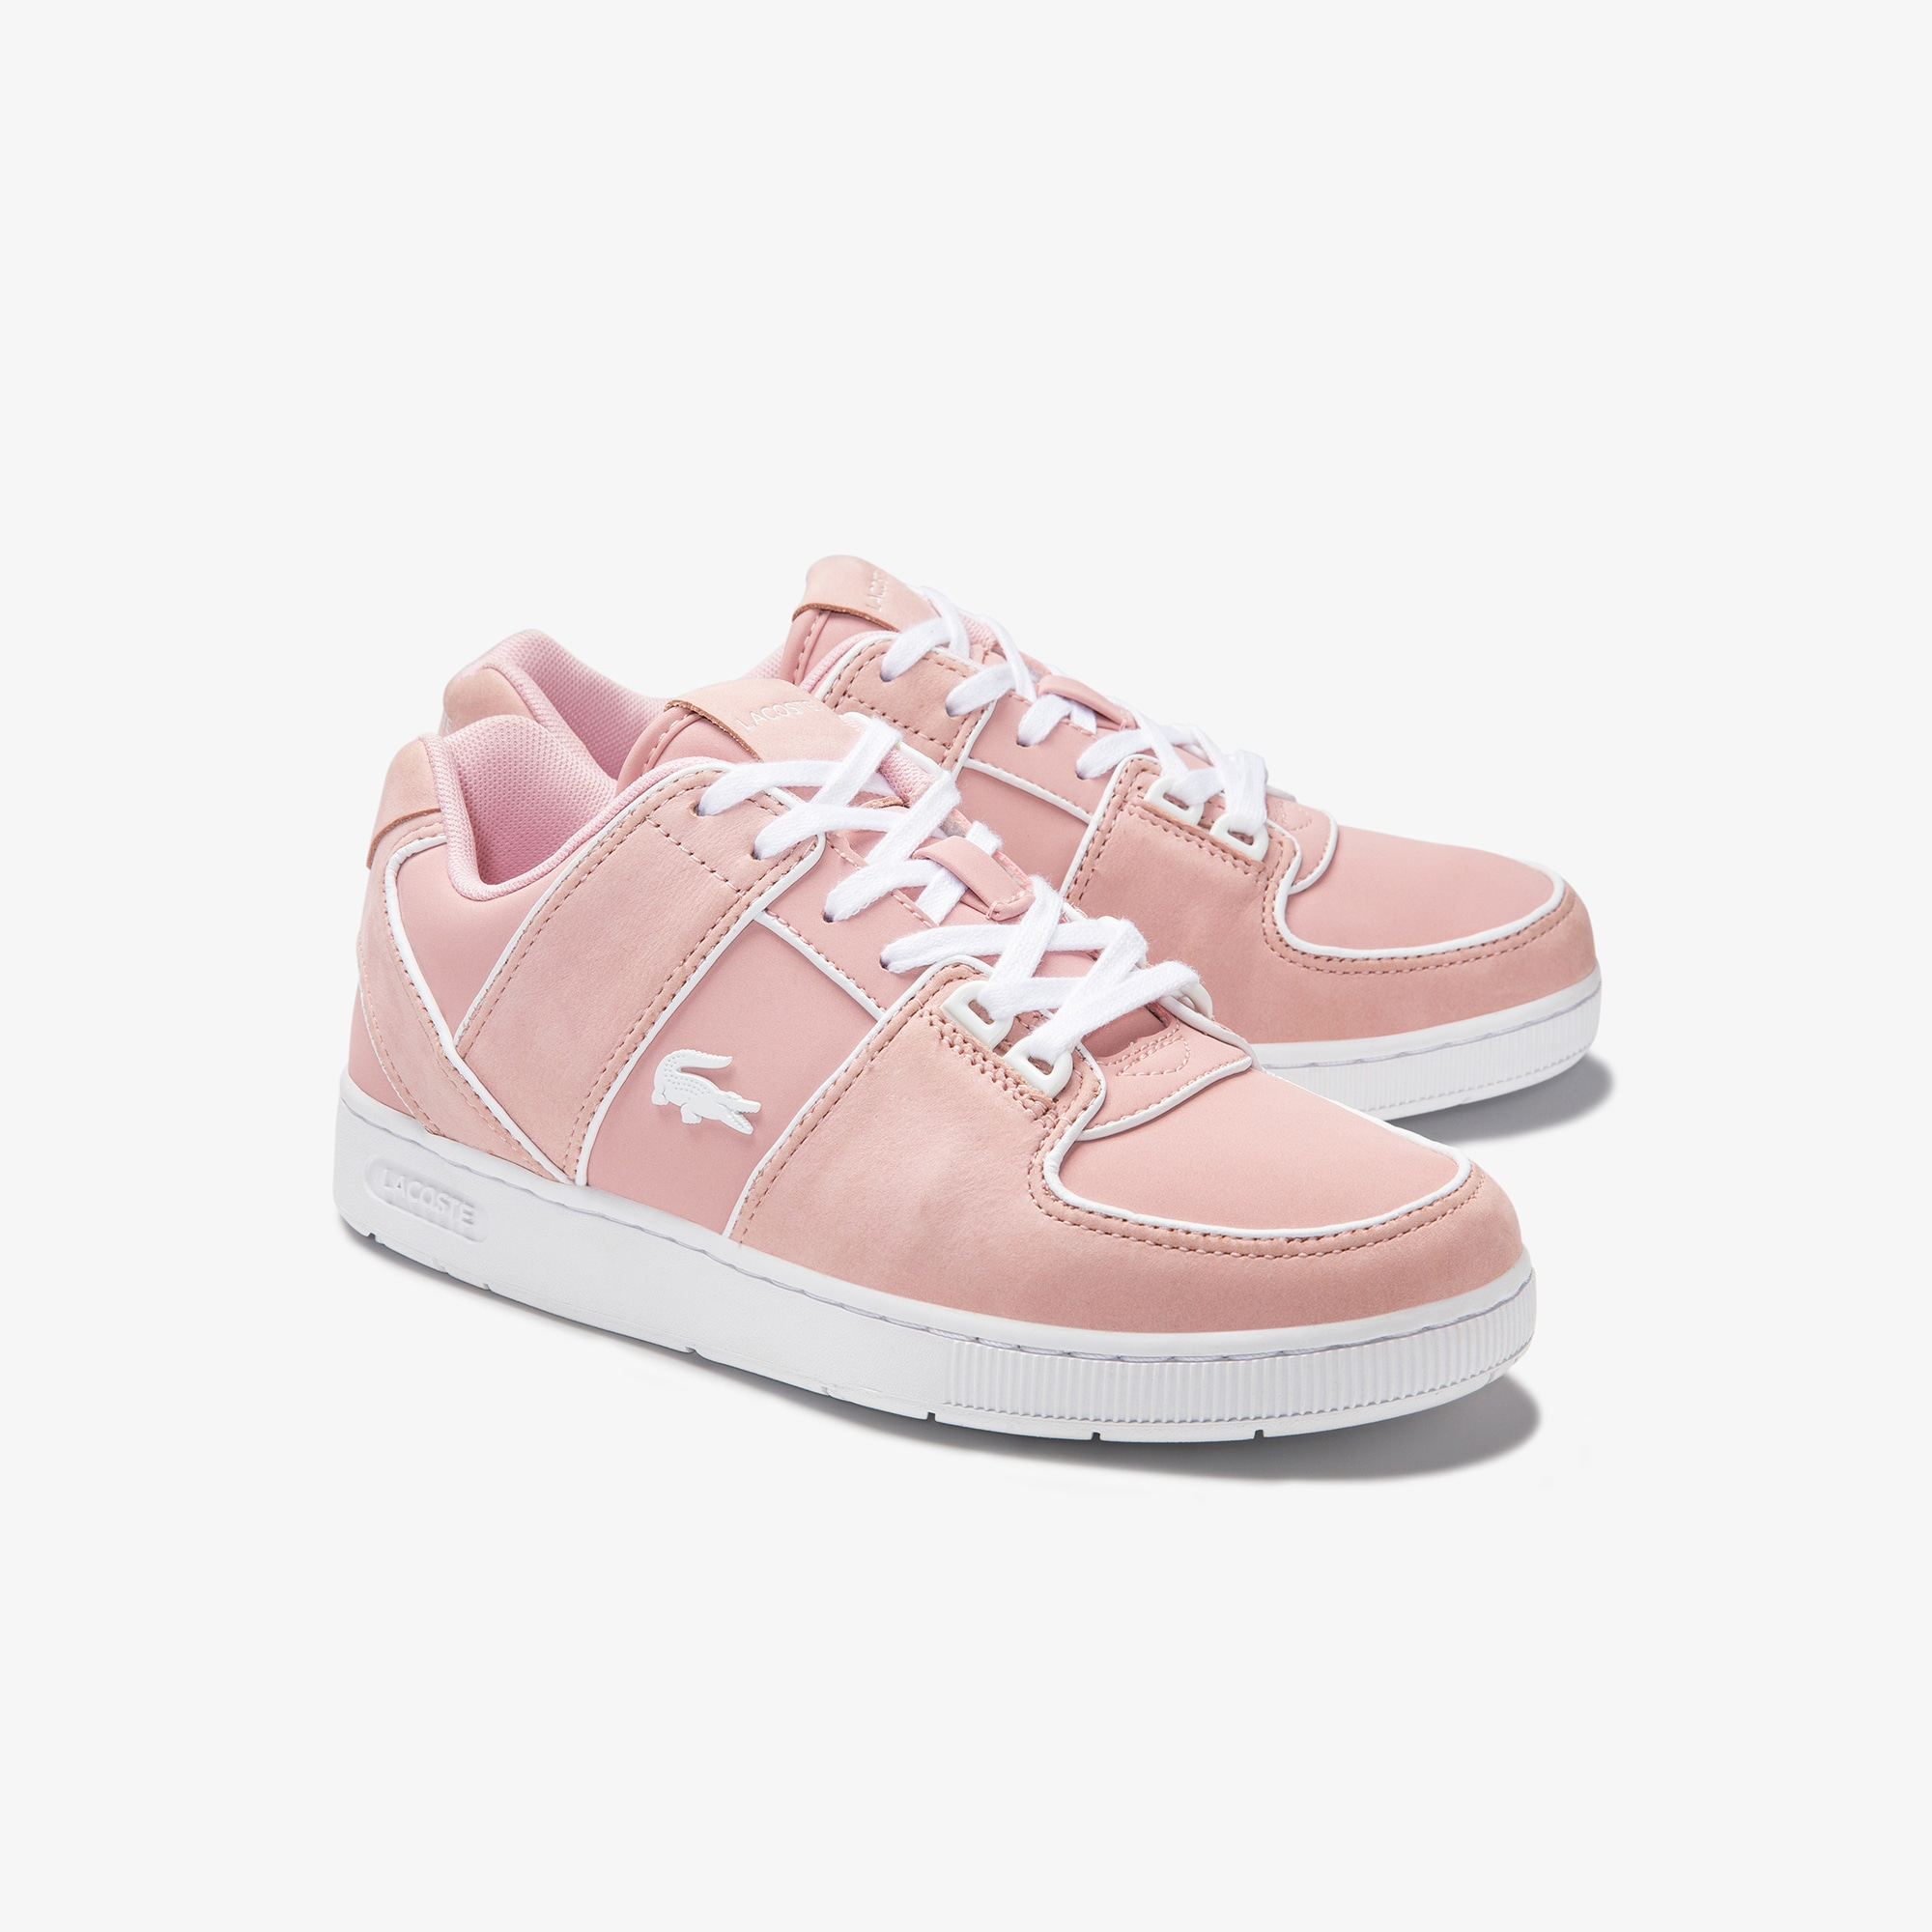 Women's Thrill Leather Trainers   LACOSTE